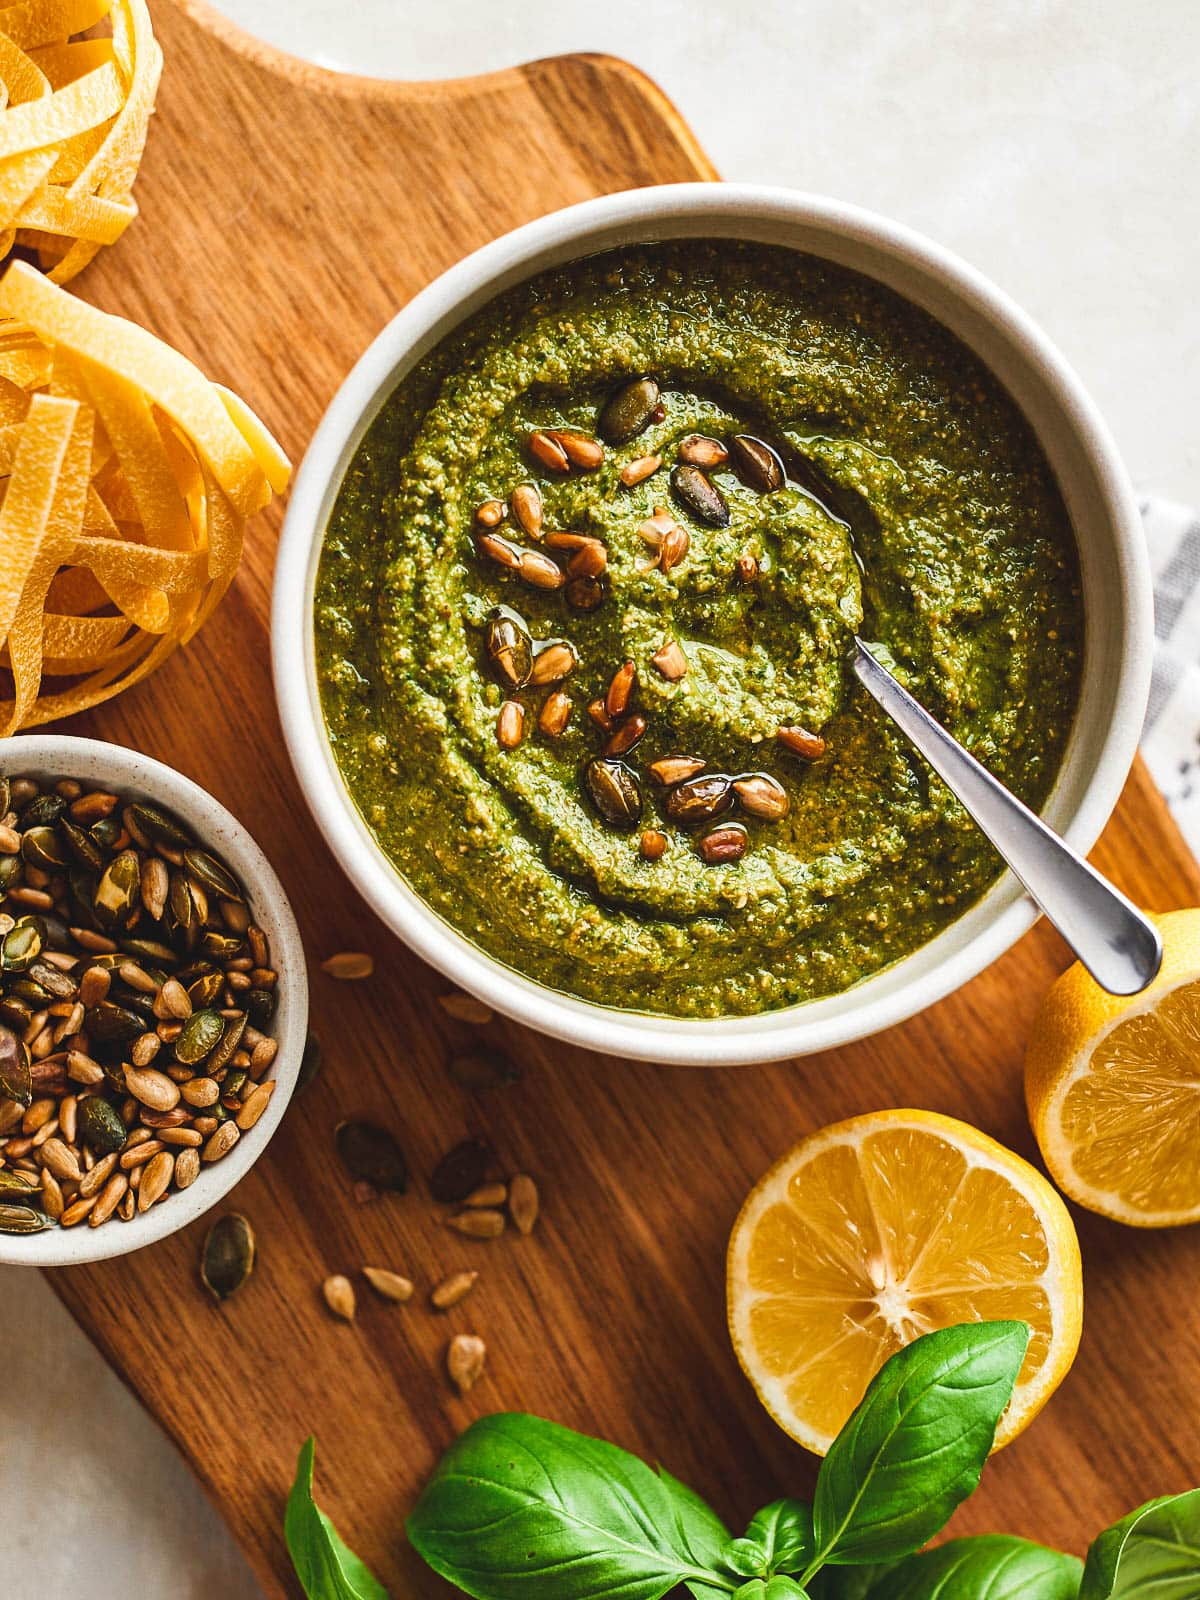 Zucchini pesto in a bowl with ingredients around it